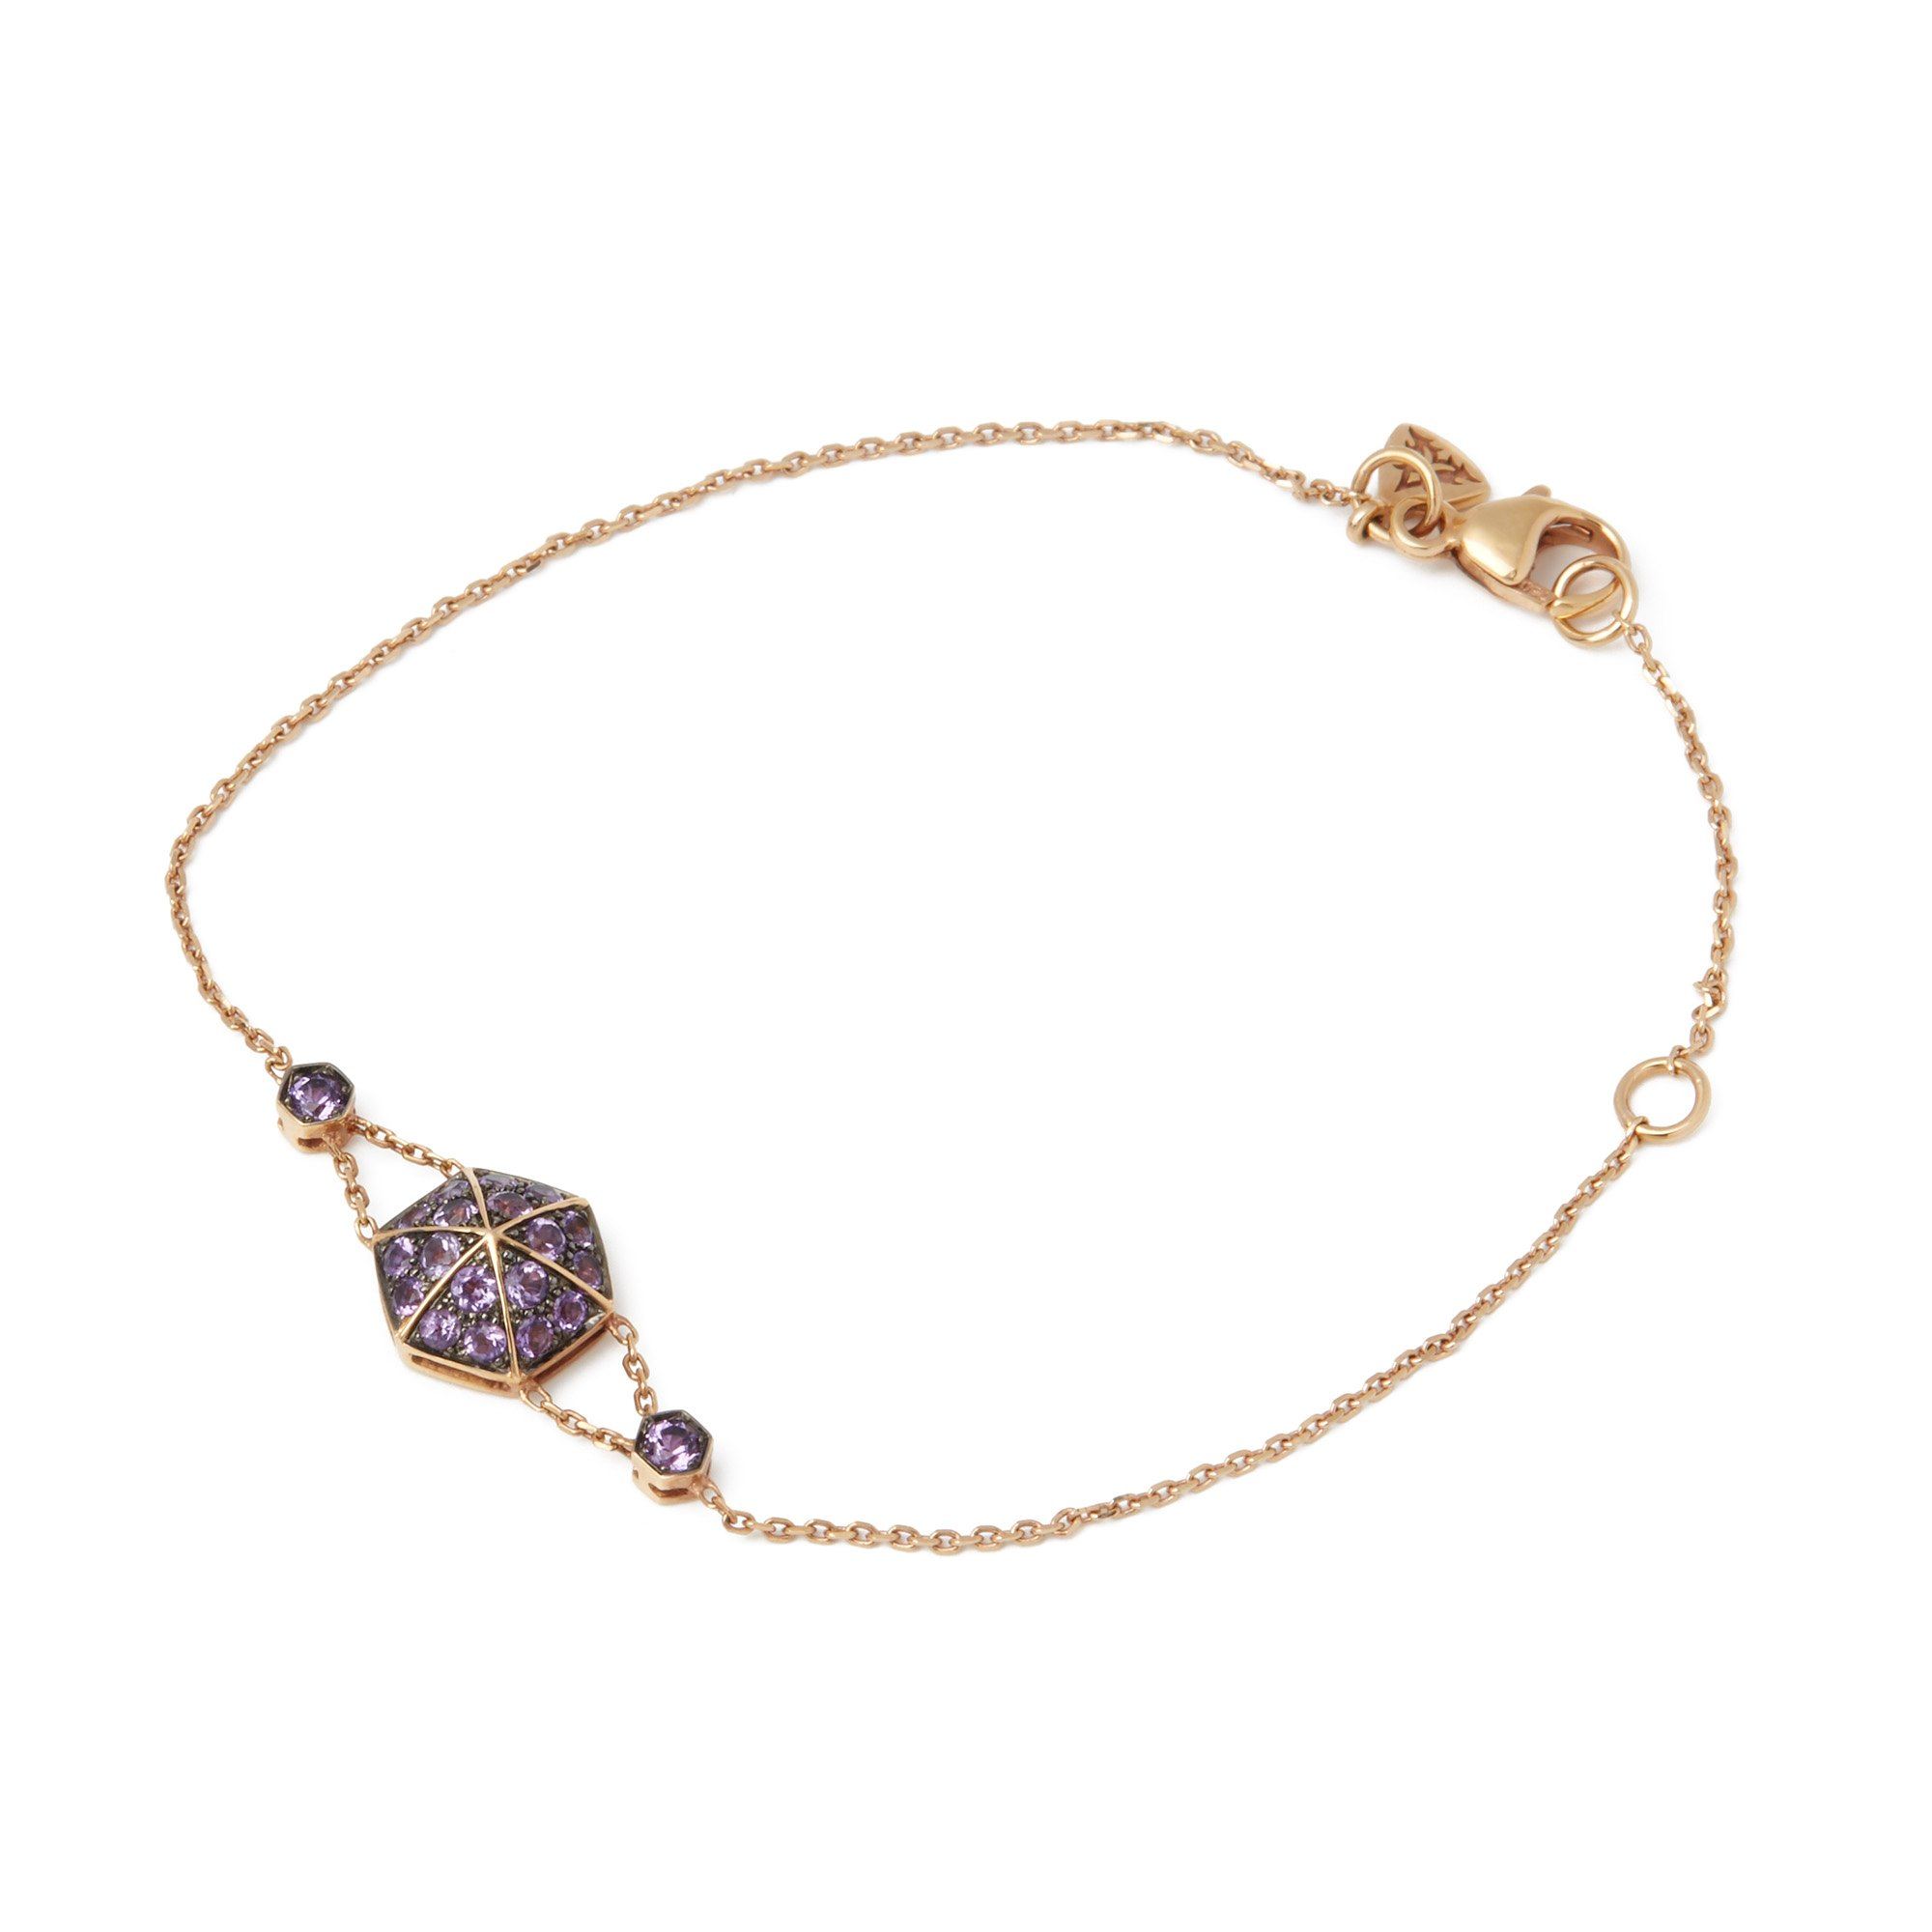 Stephen Webster 18k Rose Gold full Pave Amethyst Deco Bracelet